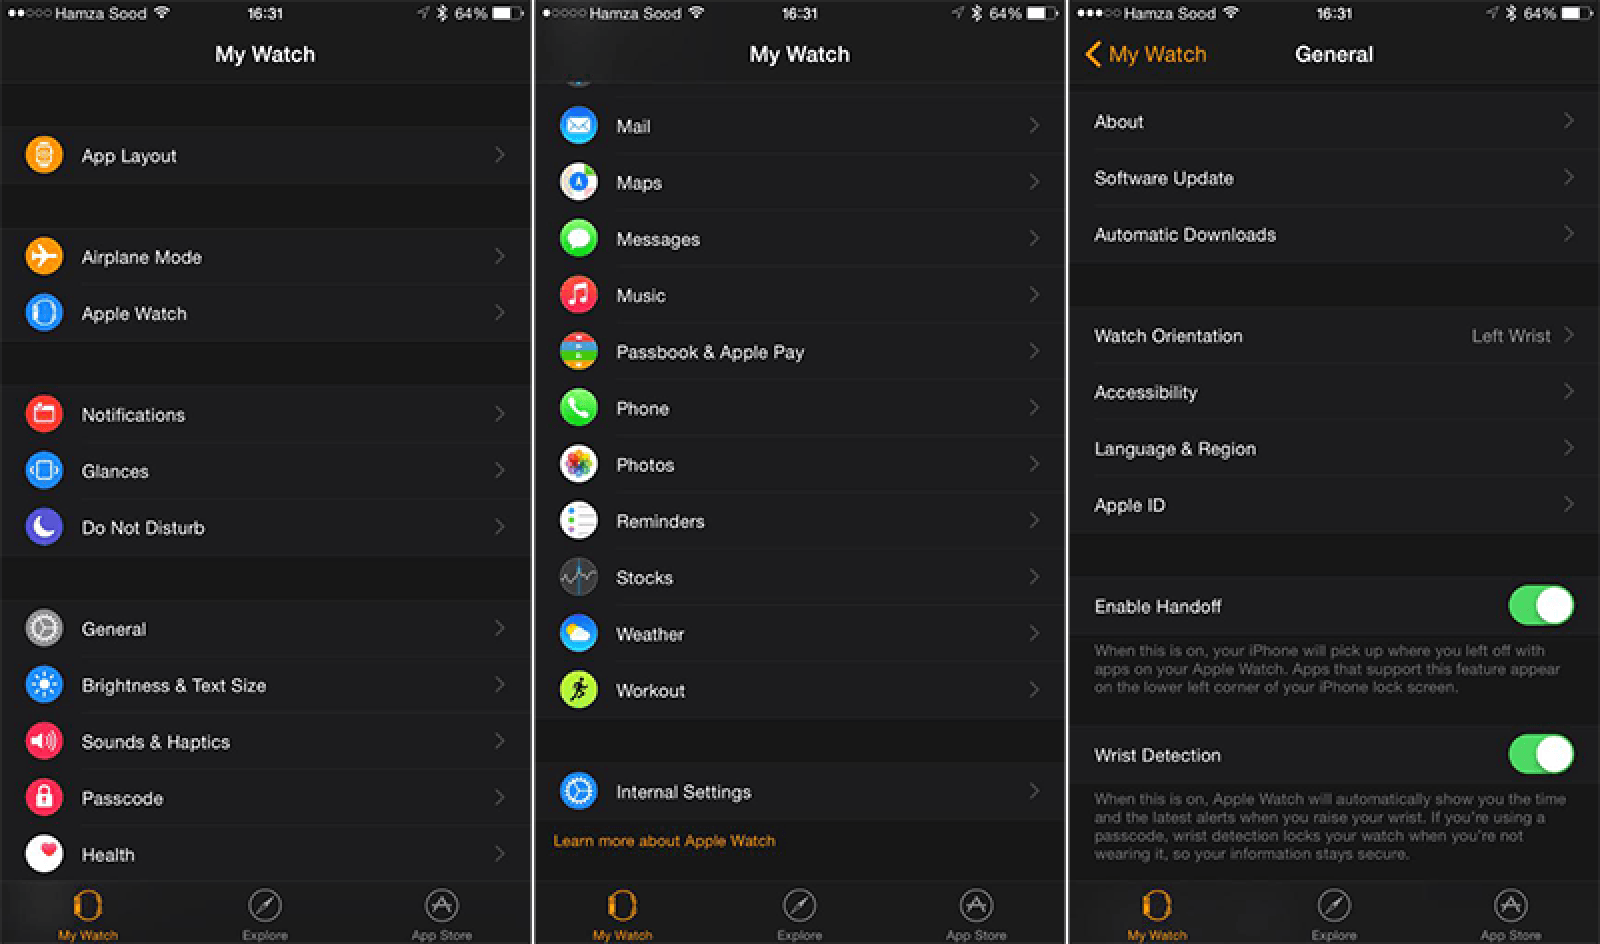 Watch Settings screen on the iPhone companion app installed with iOS 8.2